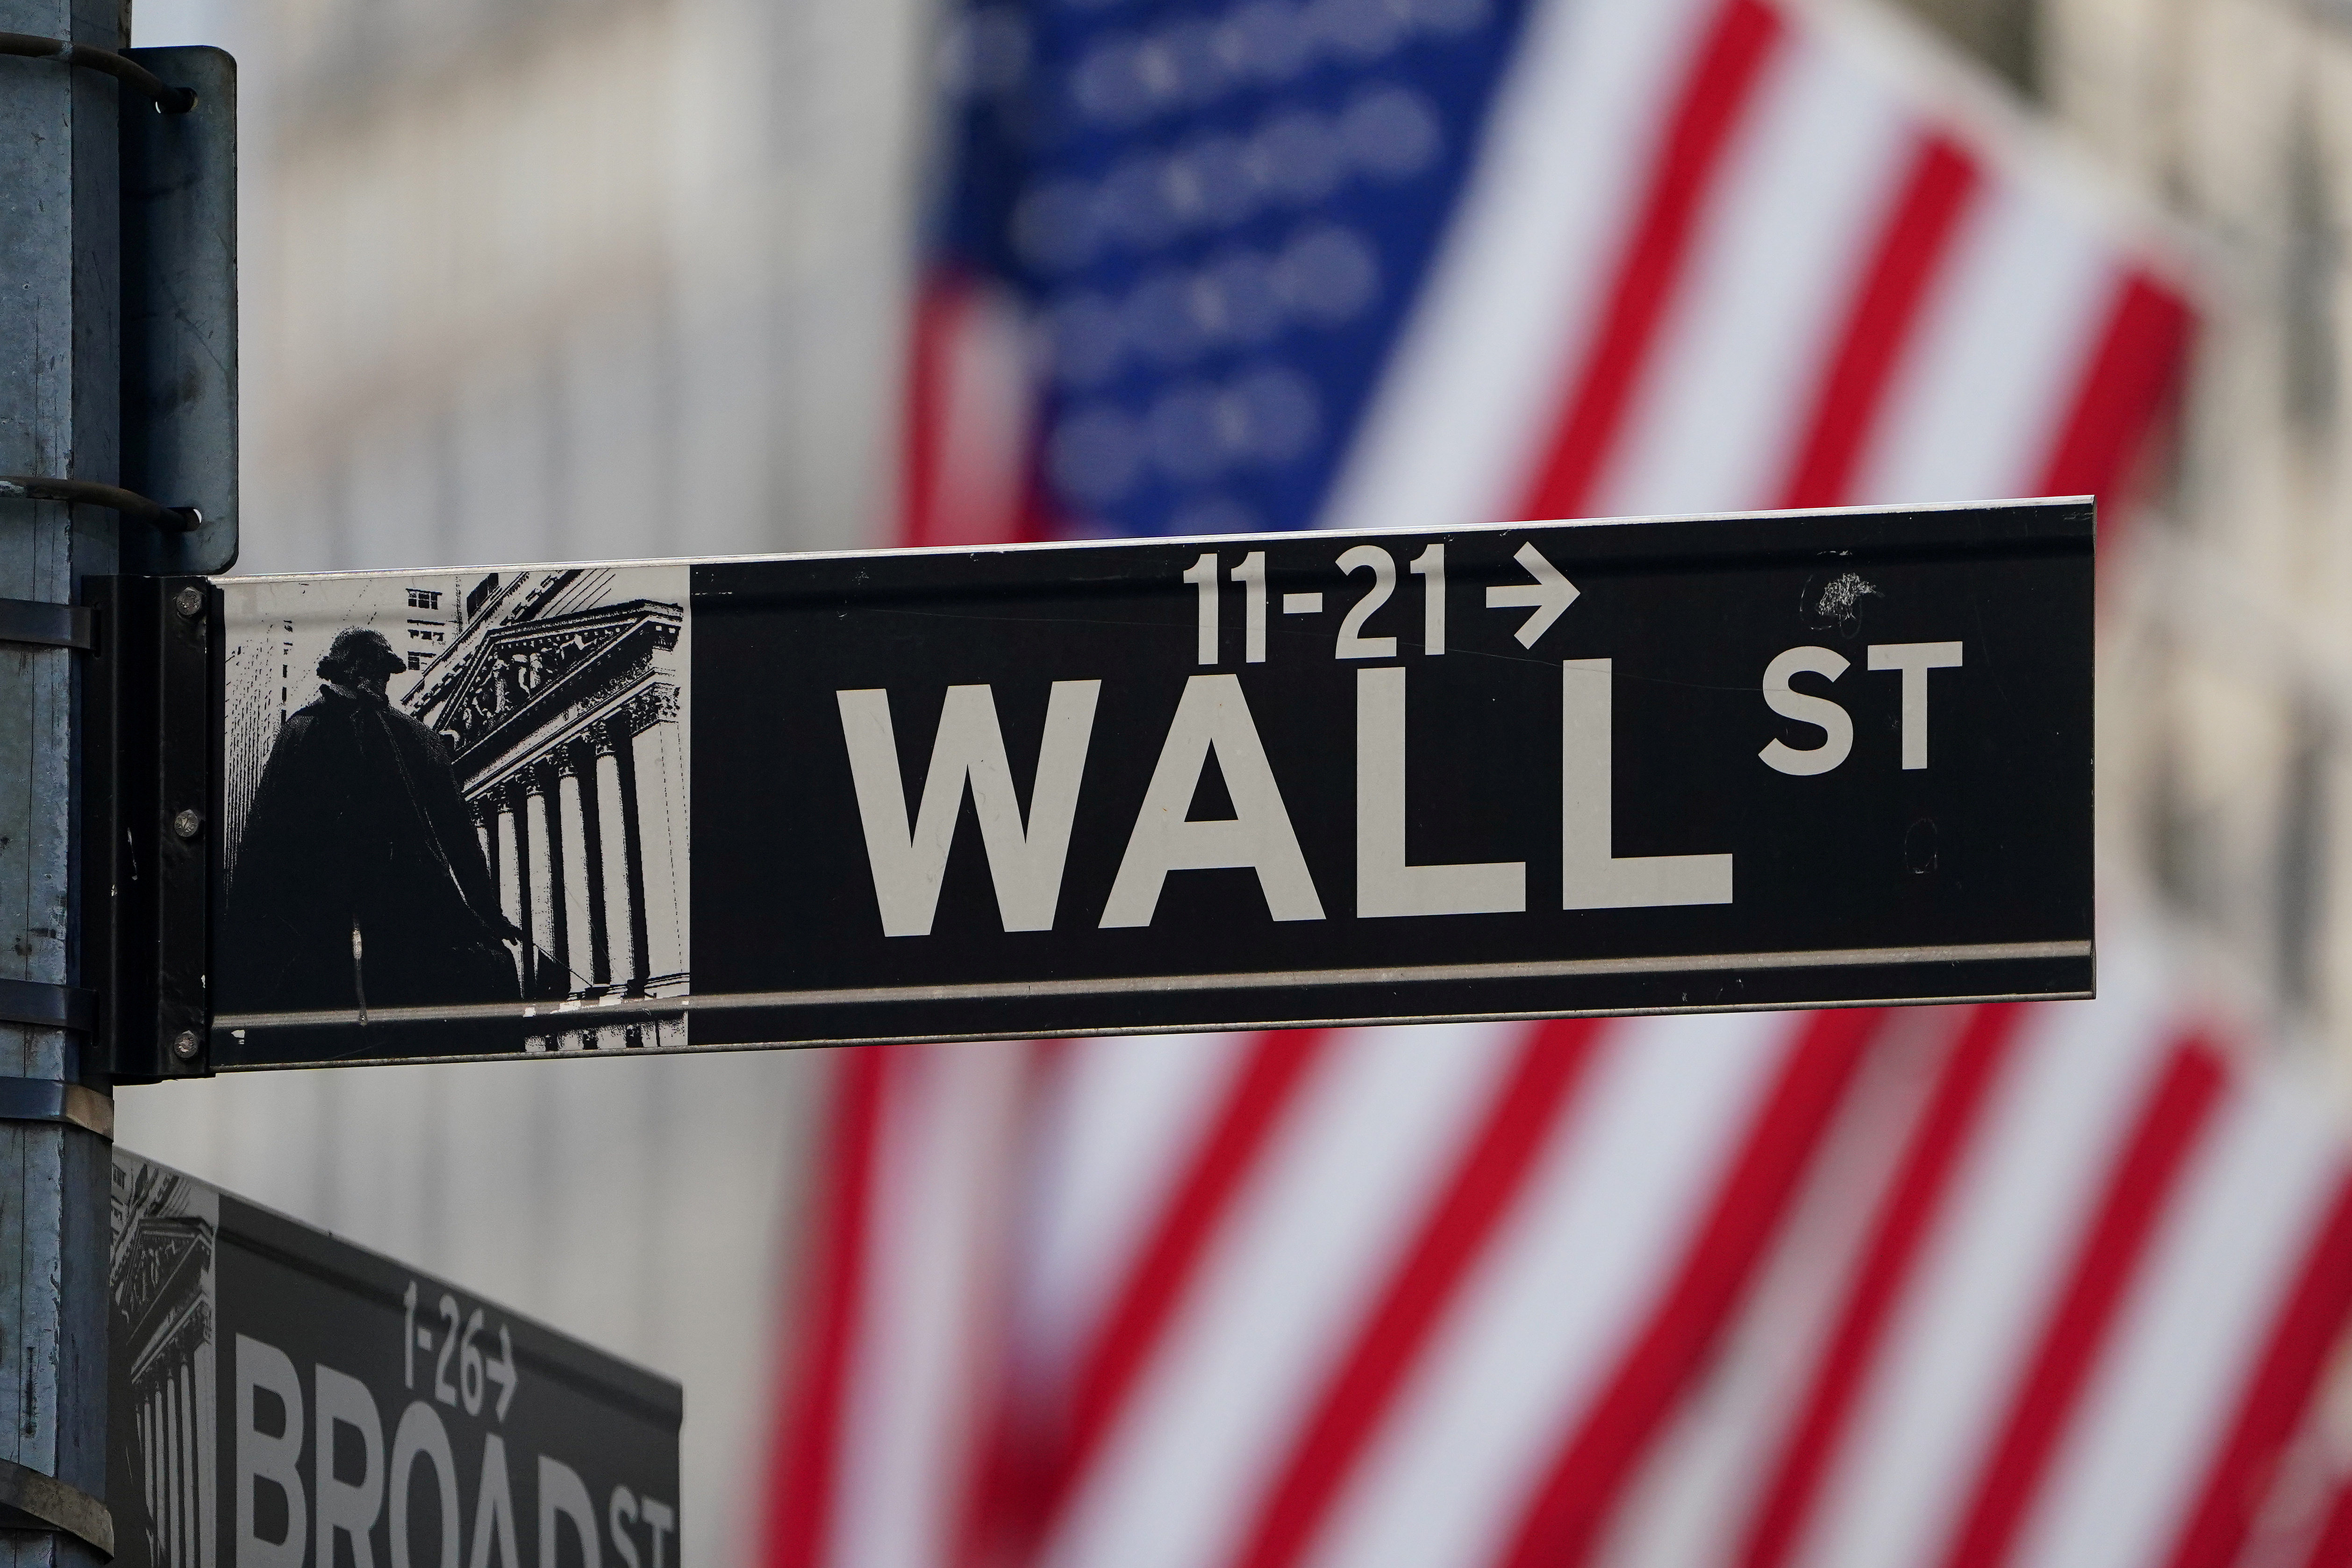 The Wall Street sign is pictured at the New York Stock exchange (NYSE) in the Manhattan borough of New York City, New York, U.S., March 9, 2020. REUTERS/Carlo Allegri/File Photo - RC273M9O3BKB